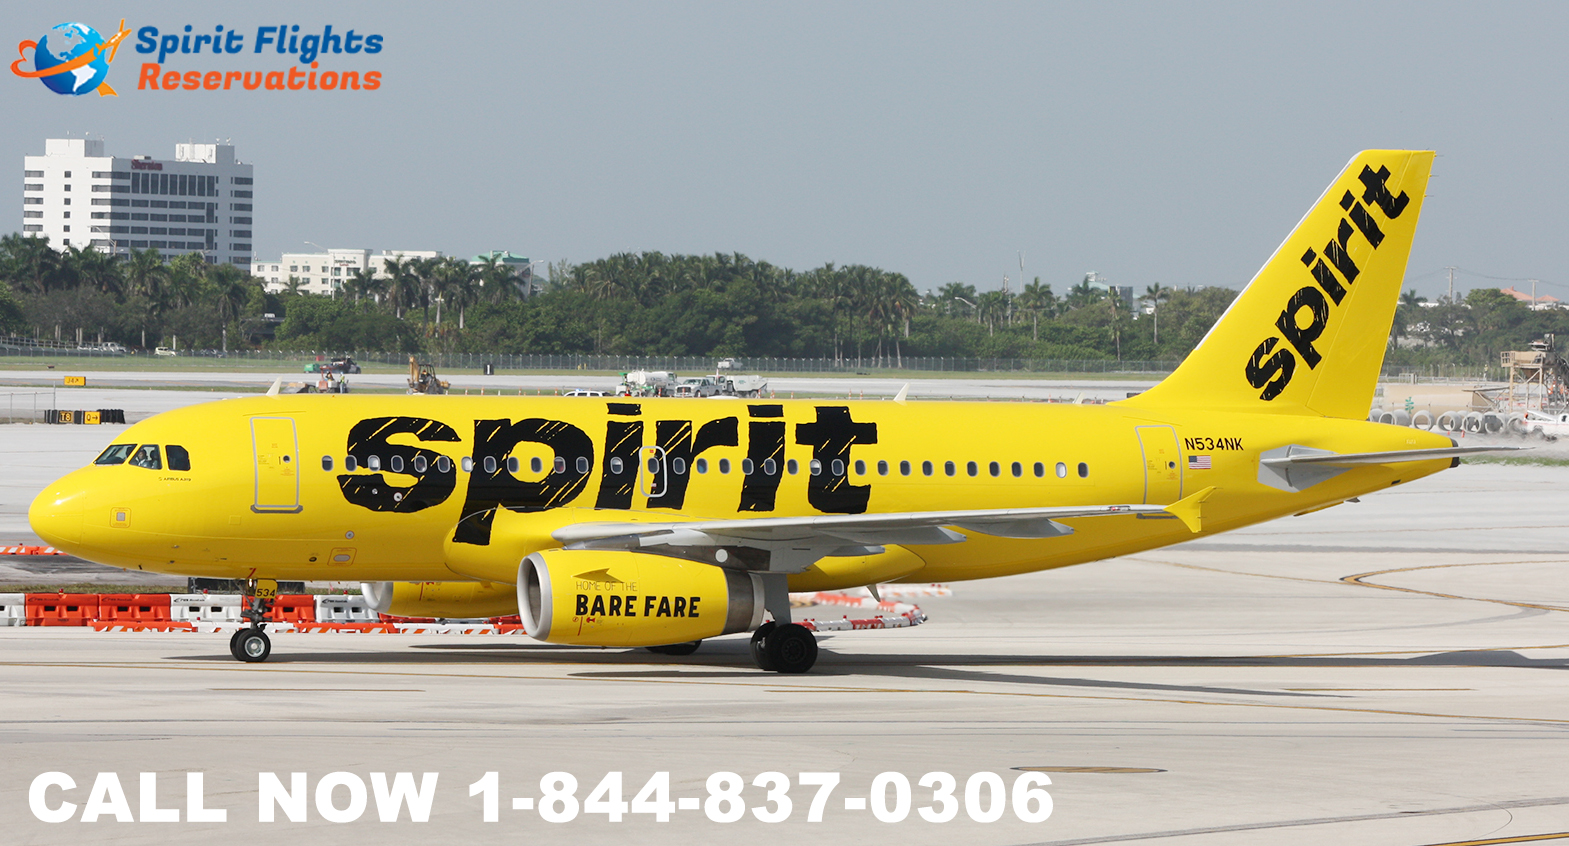 Spirit Airlines Reservations